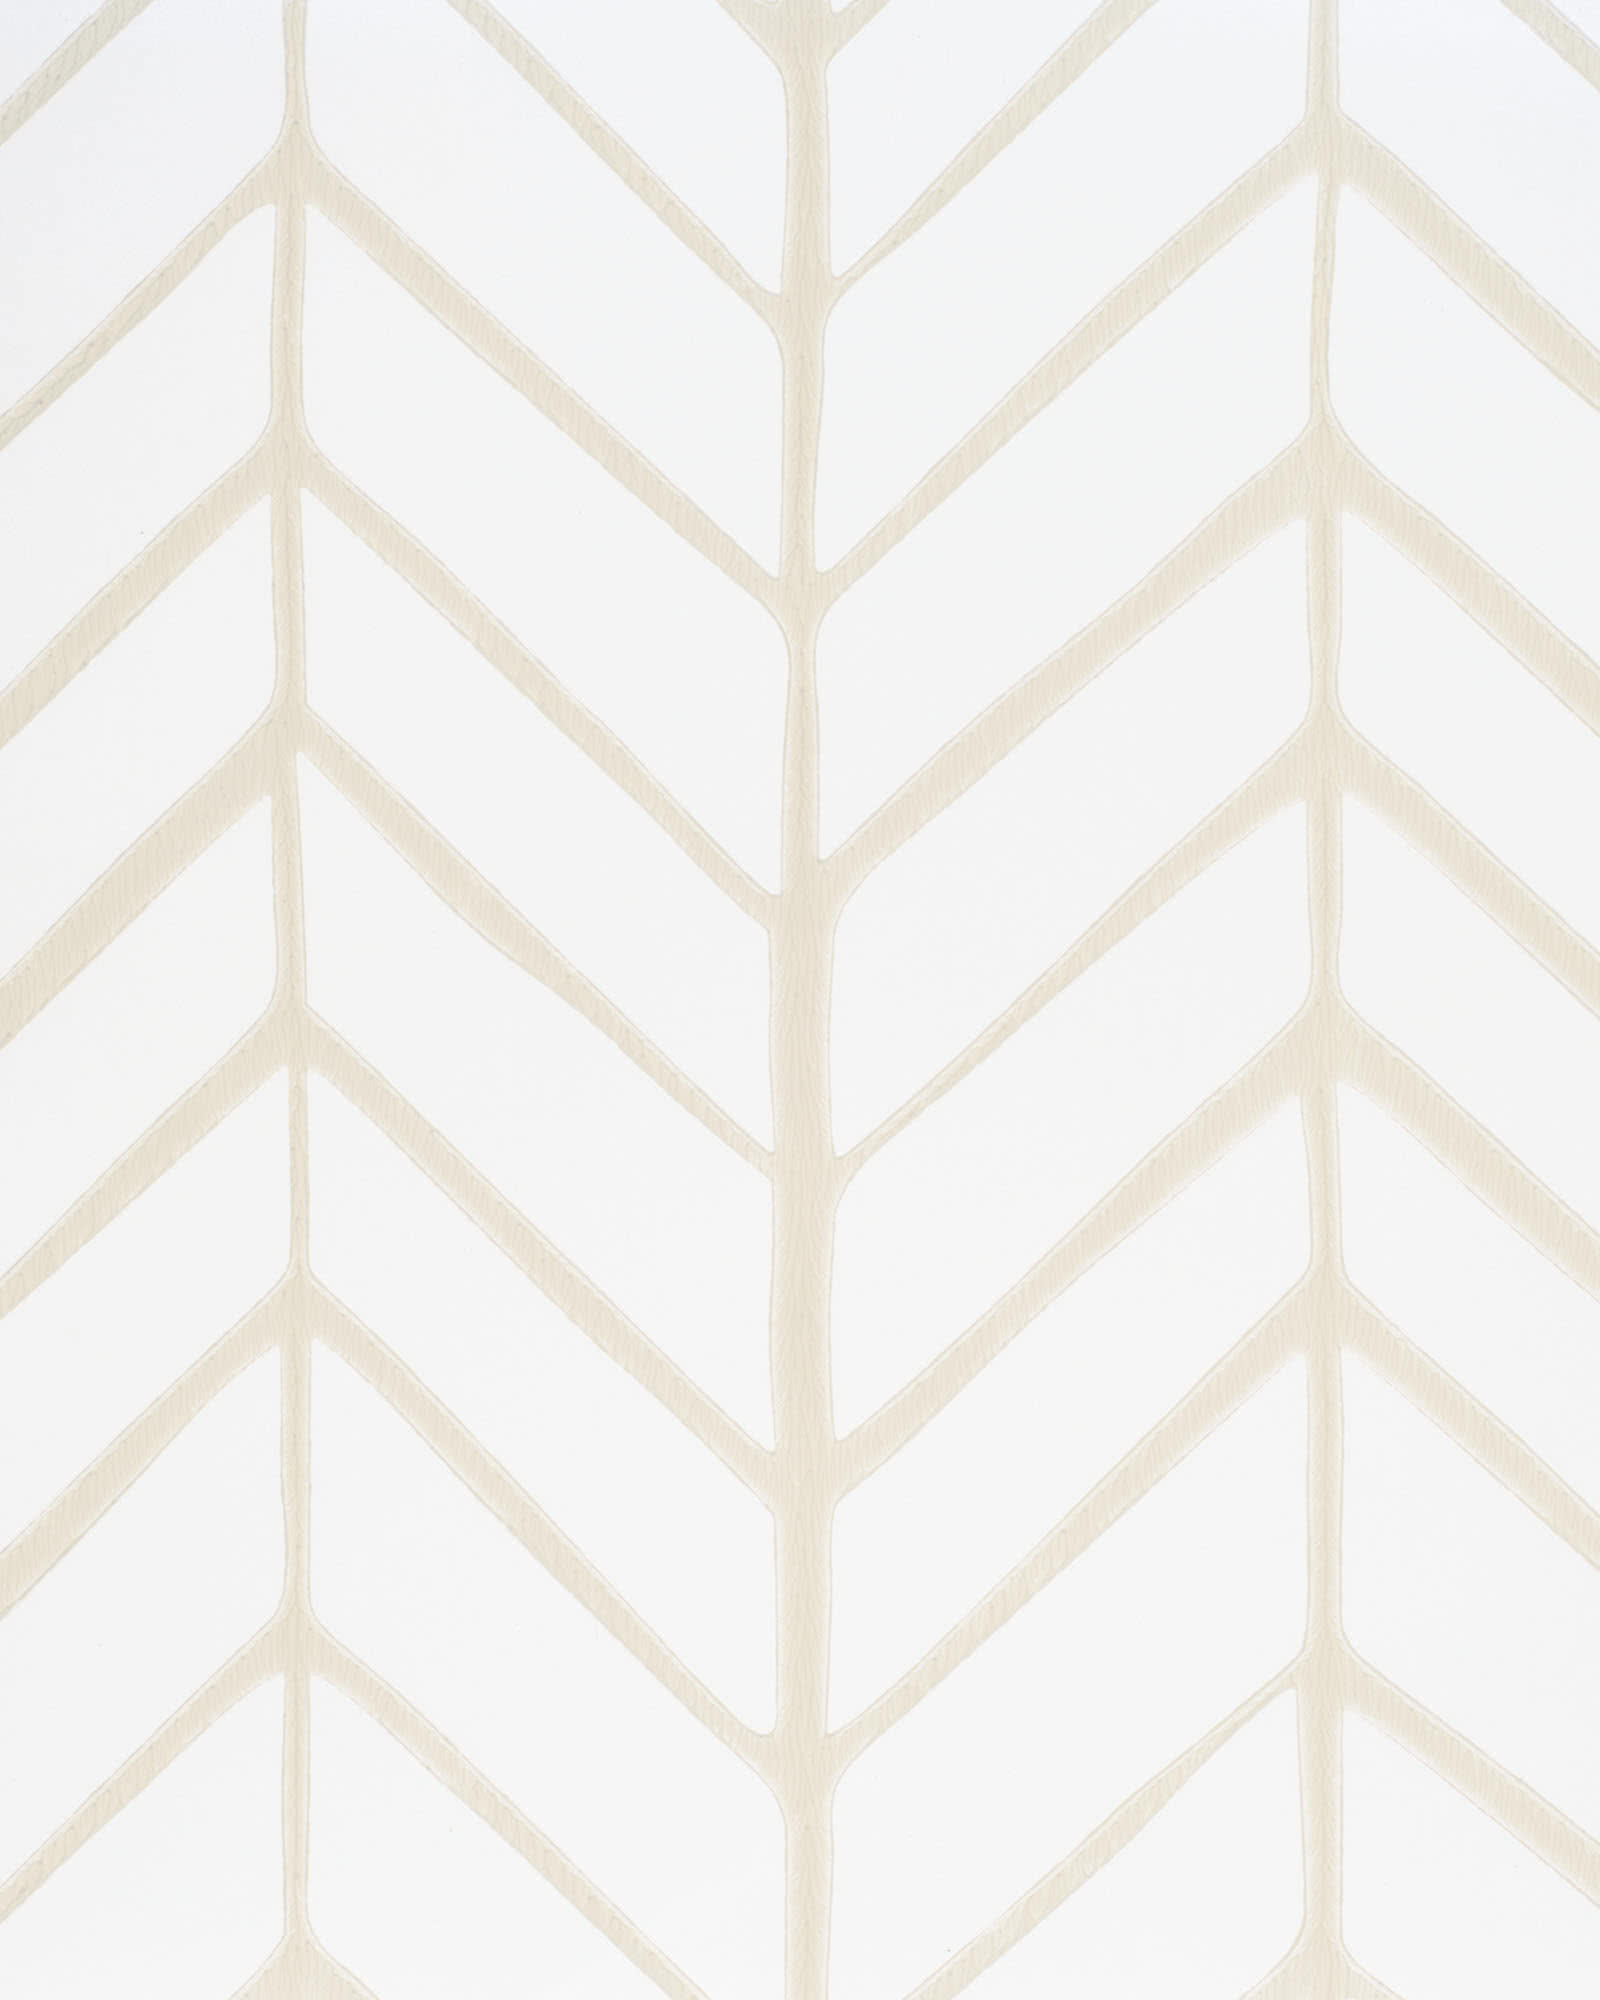 Feather Wallpaper Swatch, Bone